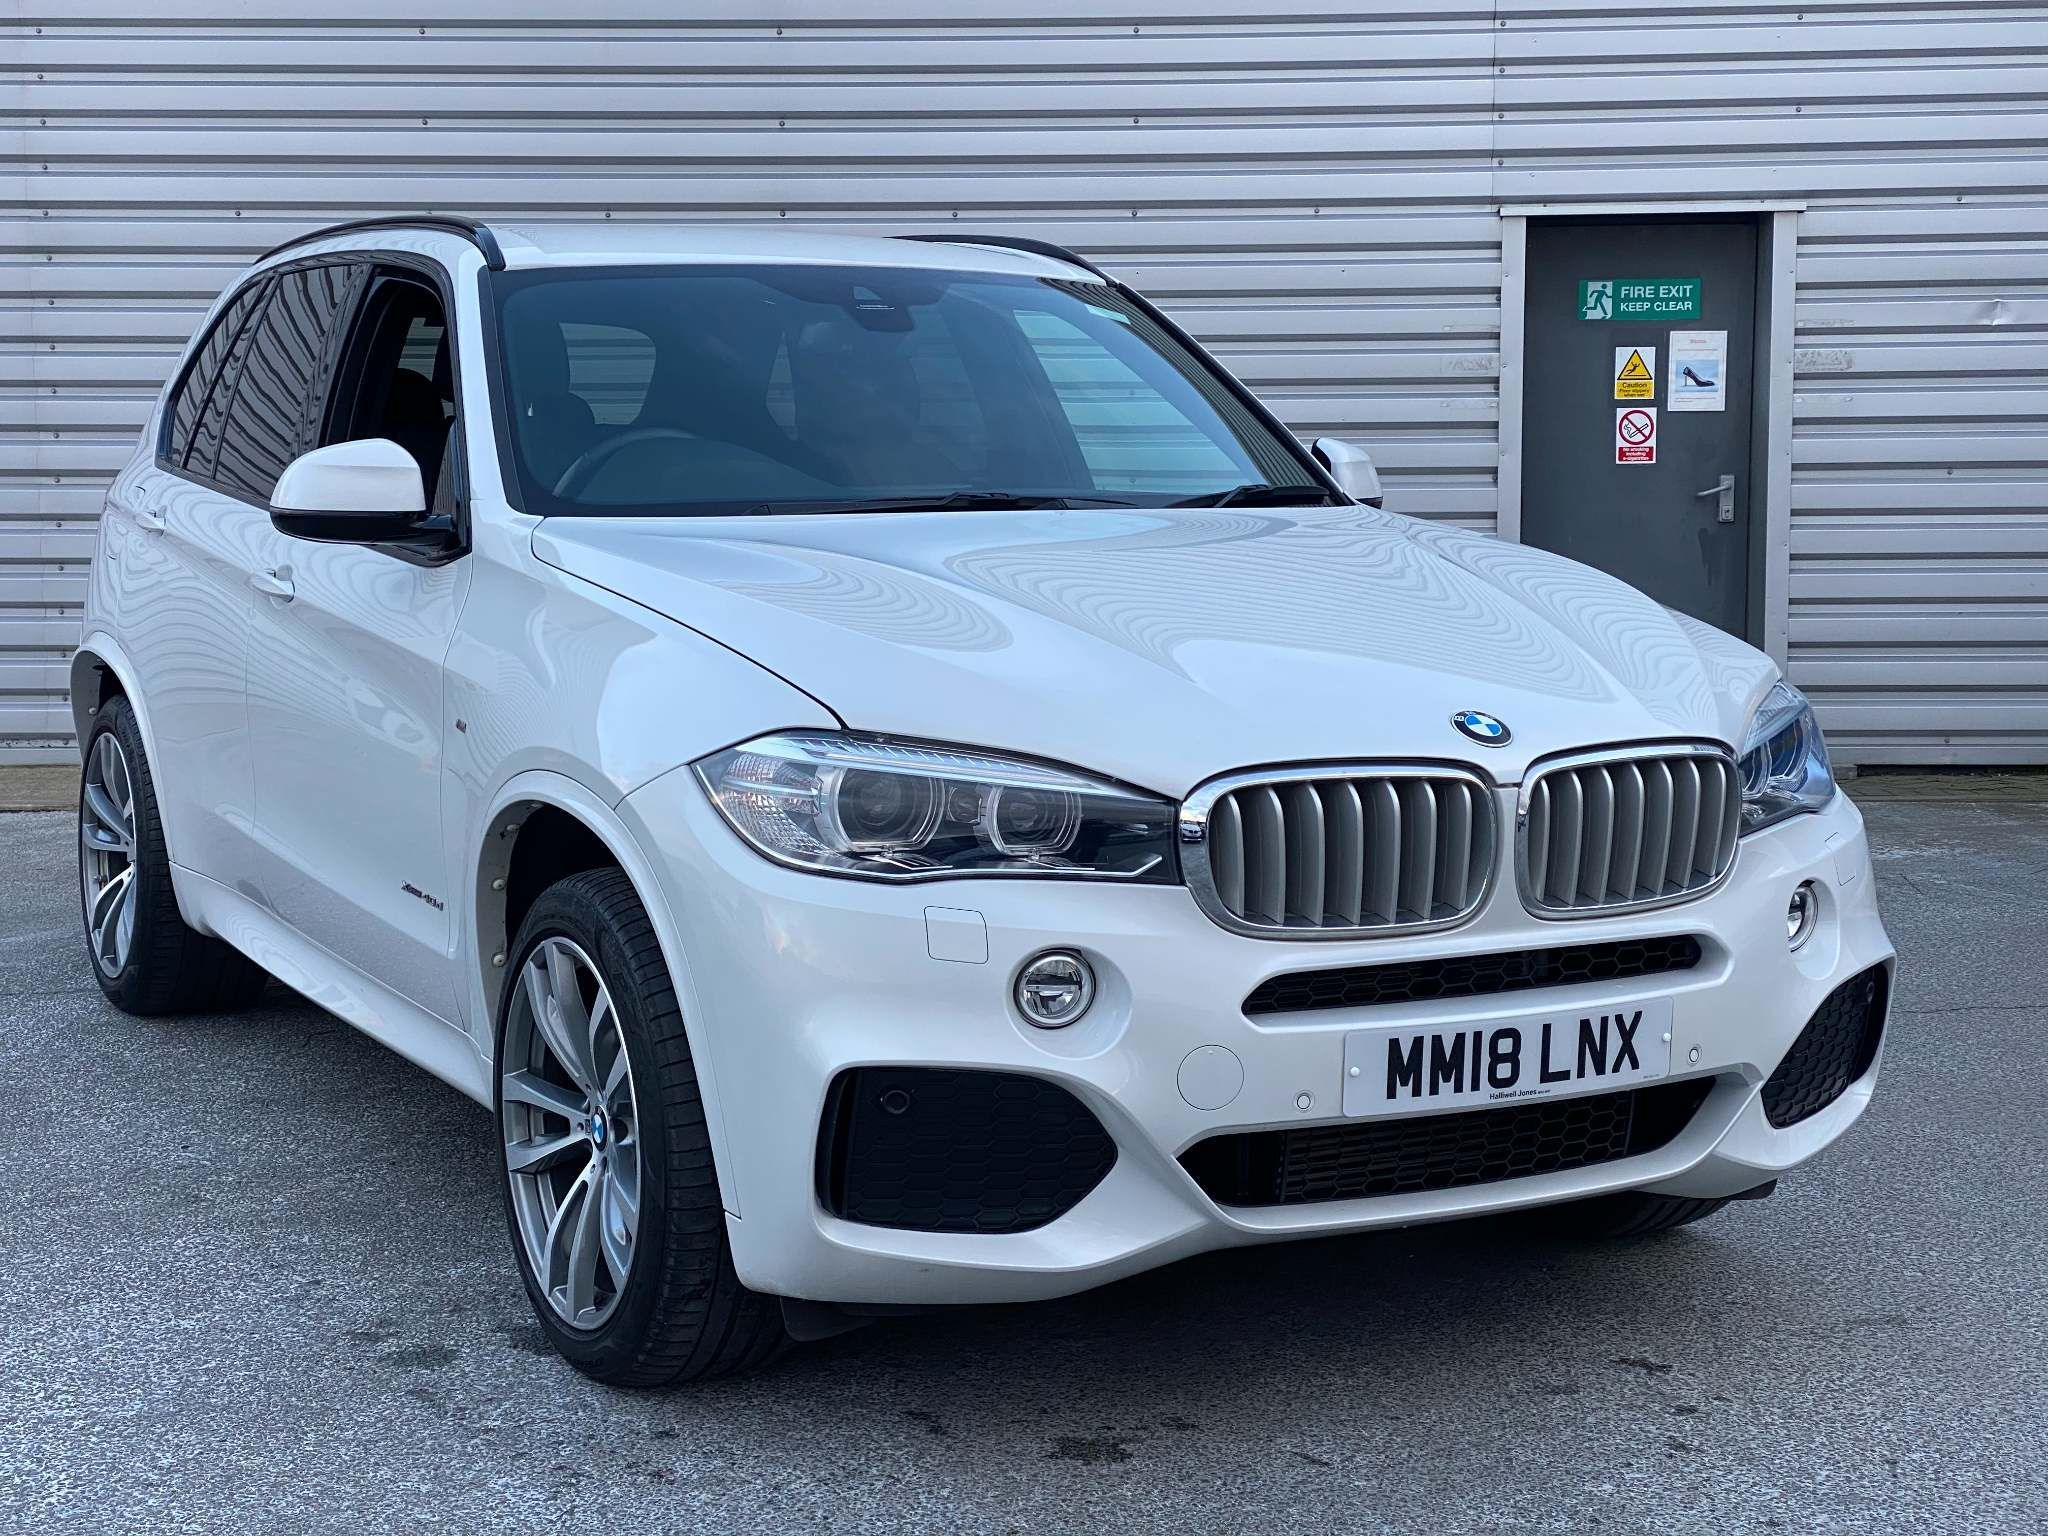 Image 1 - BMW xDrive40d M Sport (MM18LNX)